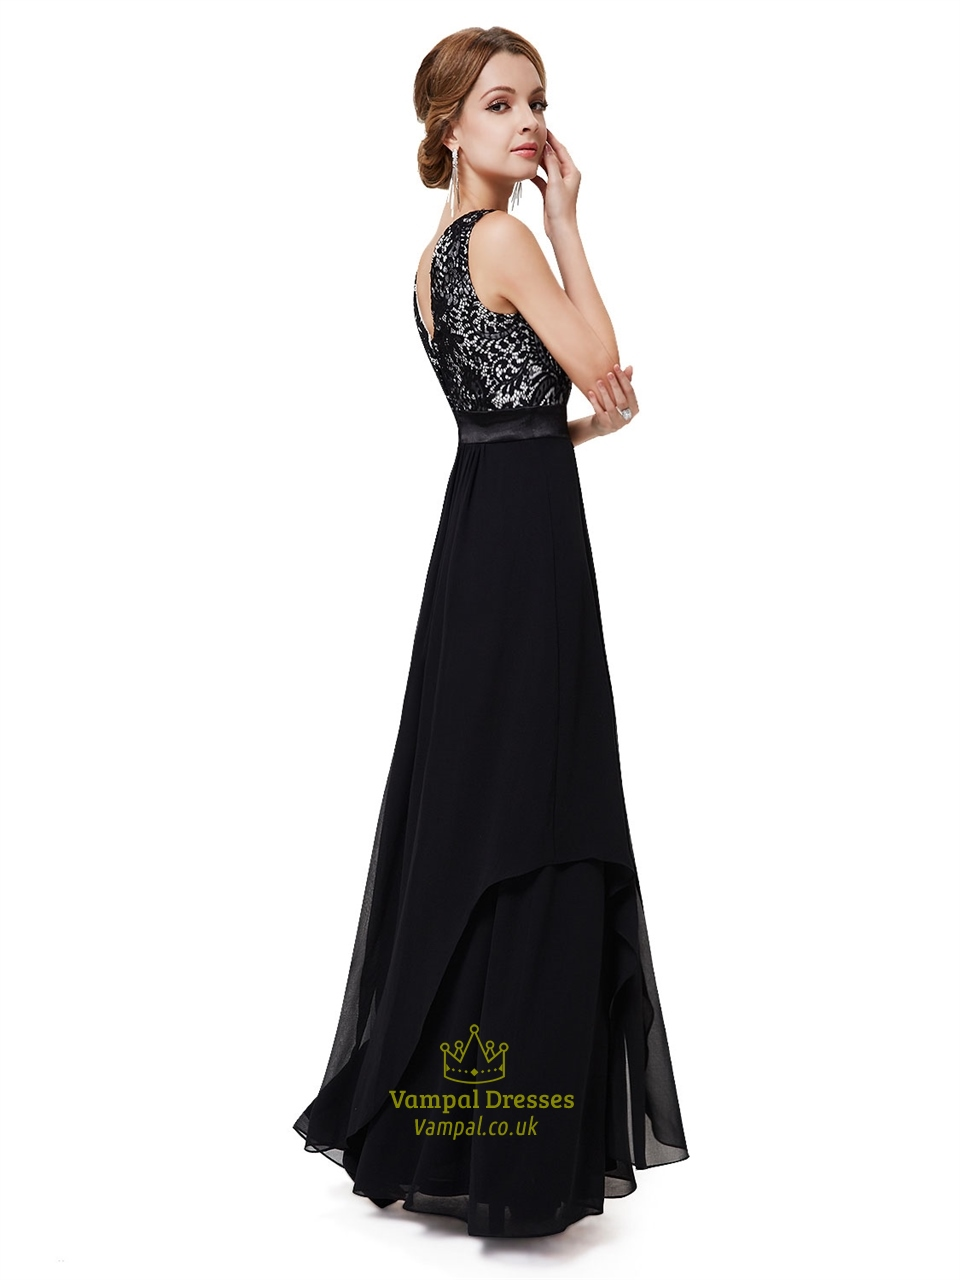 For retail black and white evening dresses uk cheap toronto